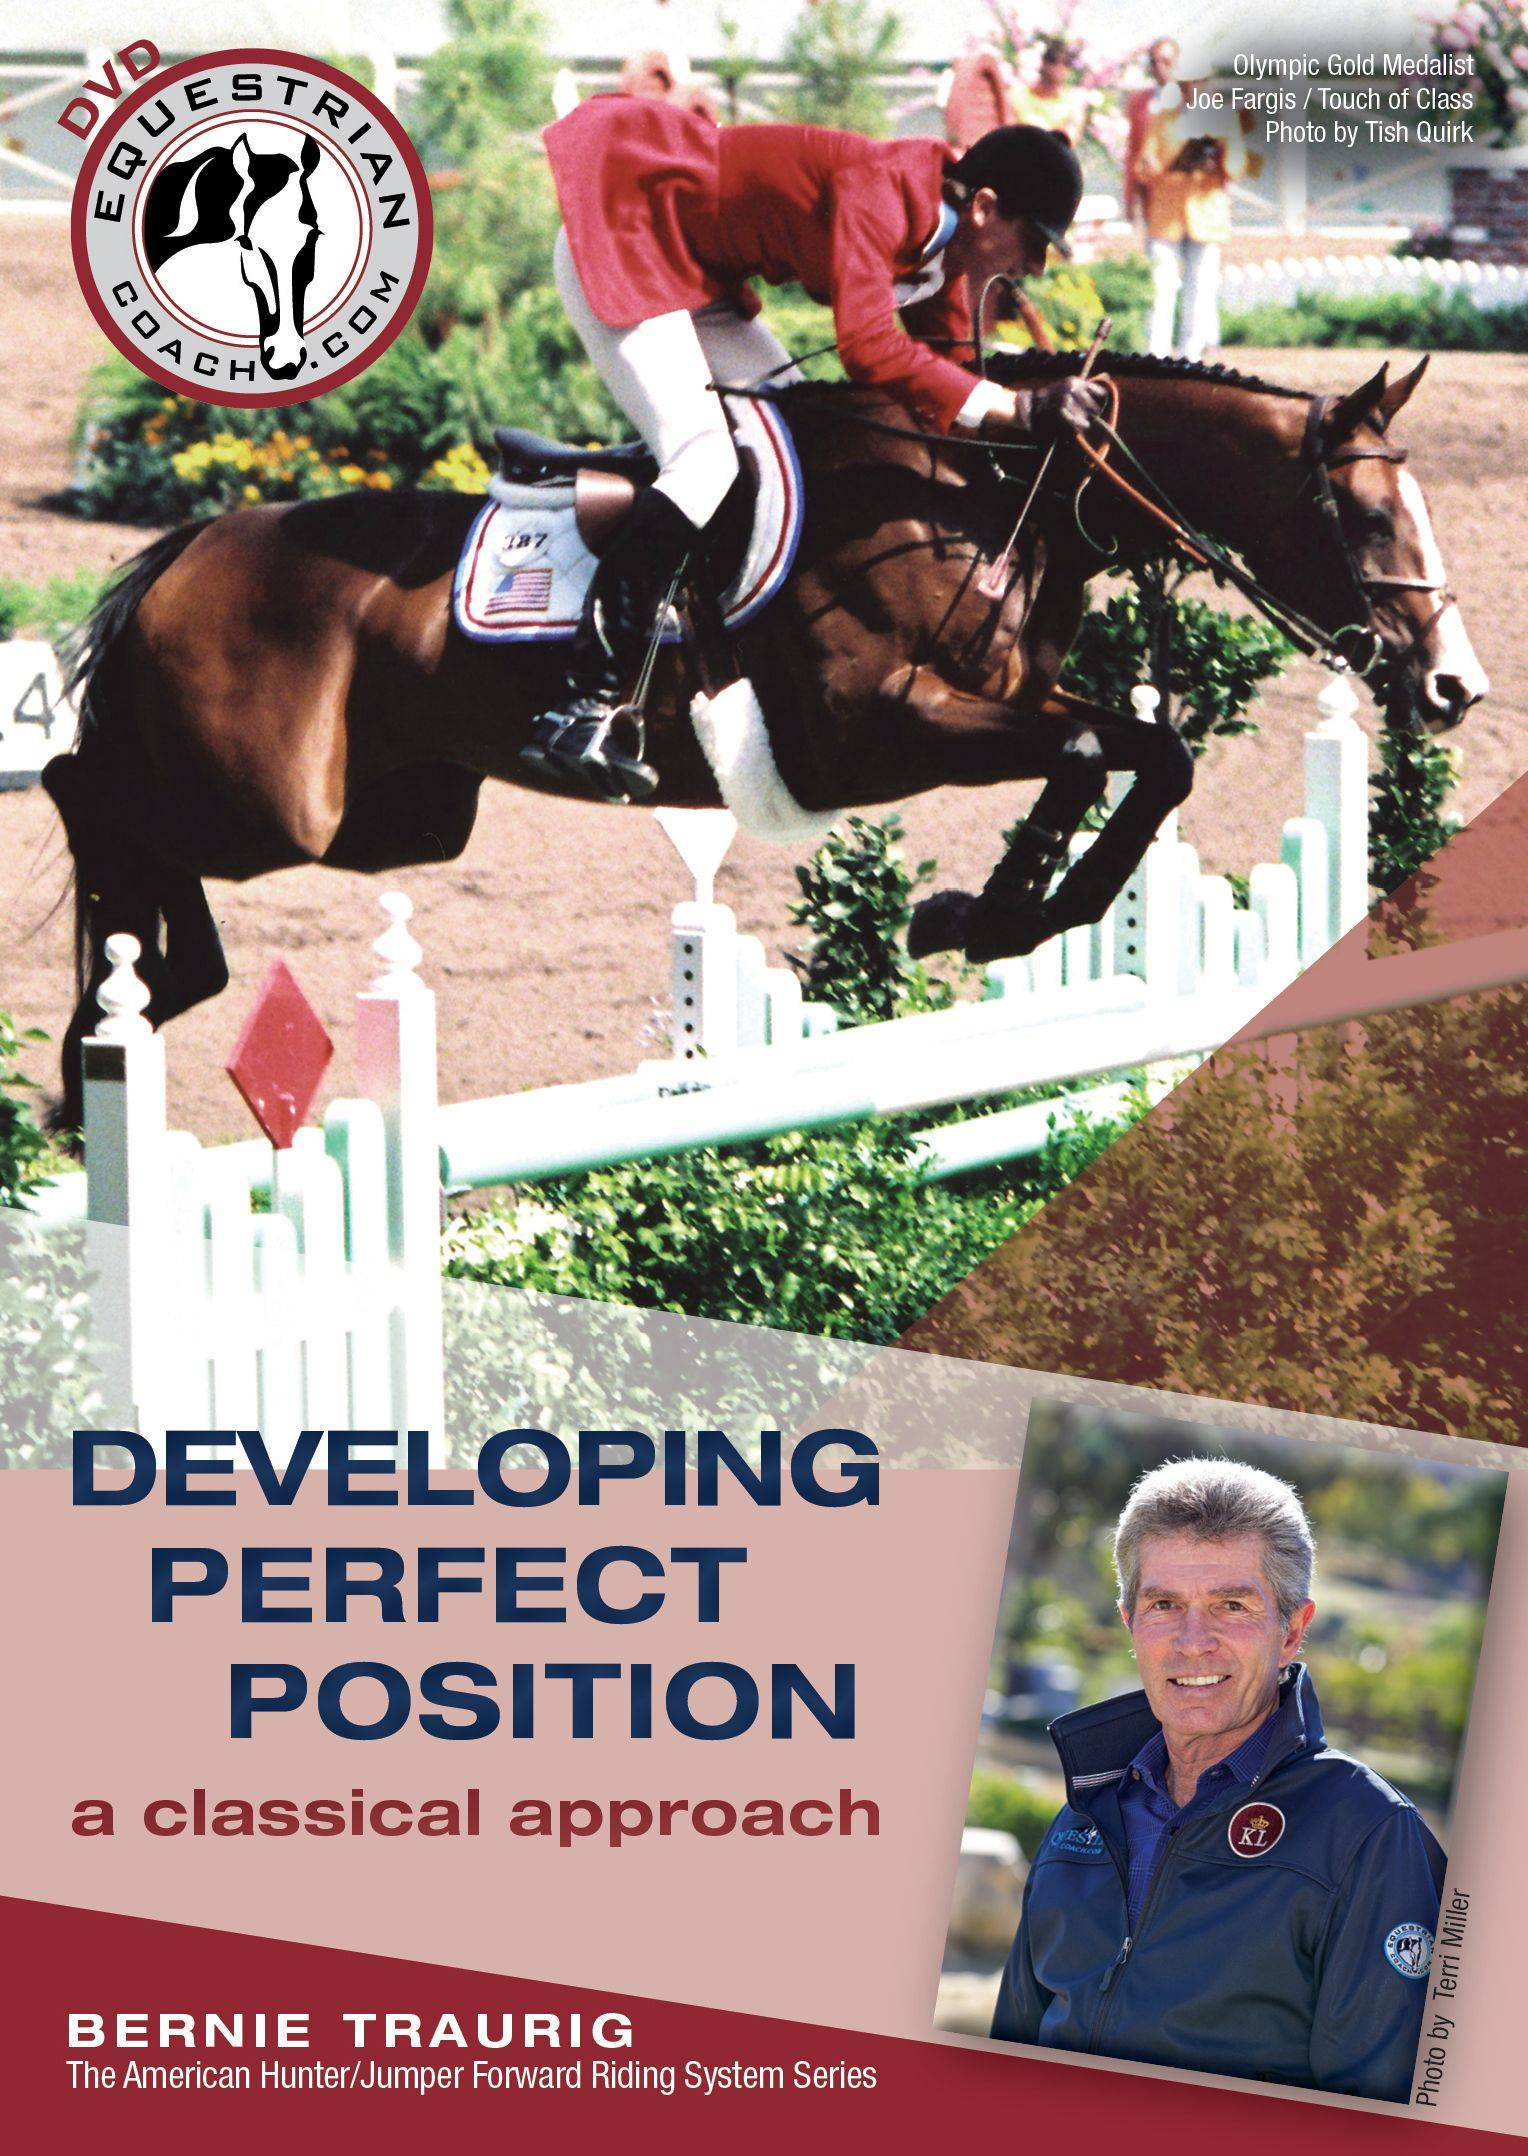 Developing Perfect Position DVD with Bernie Traurig